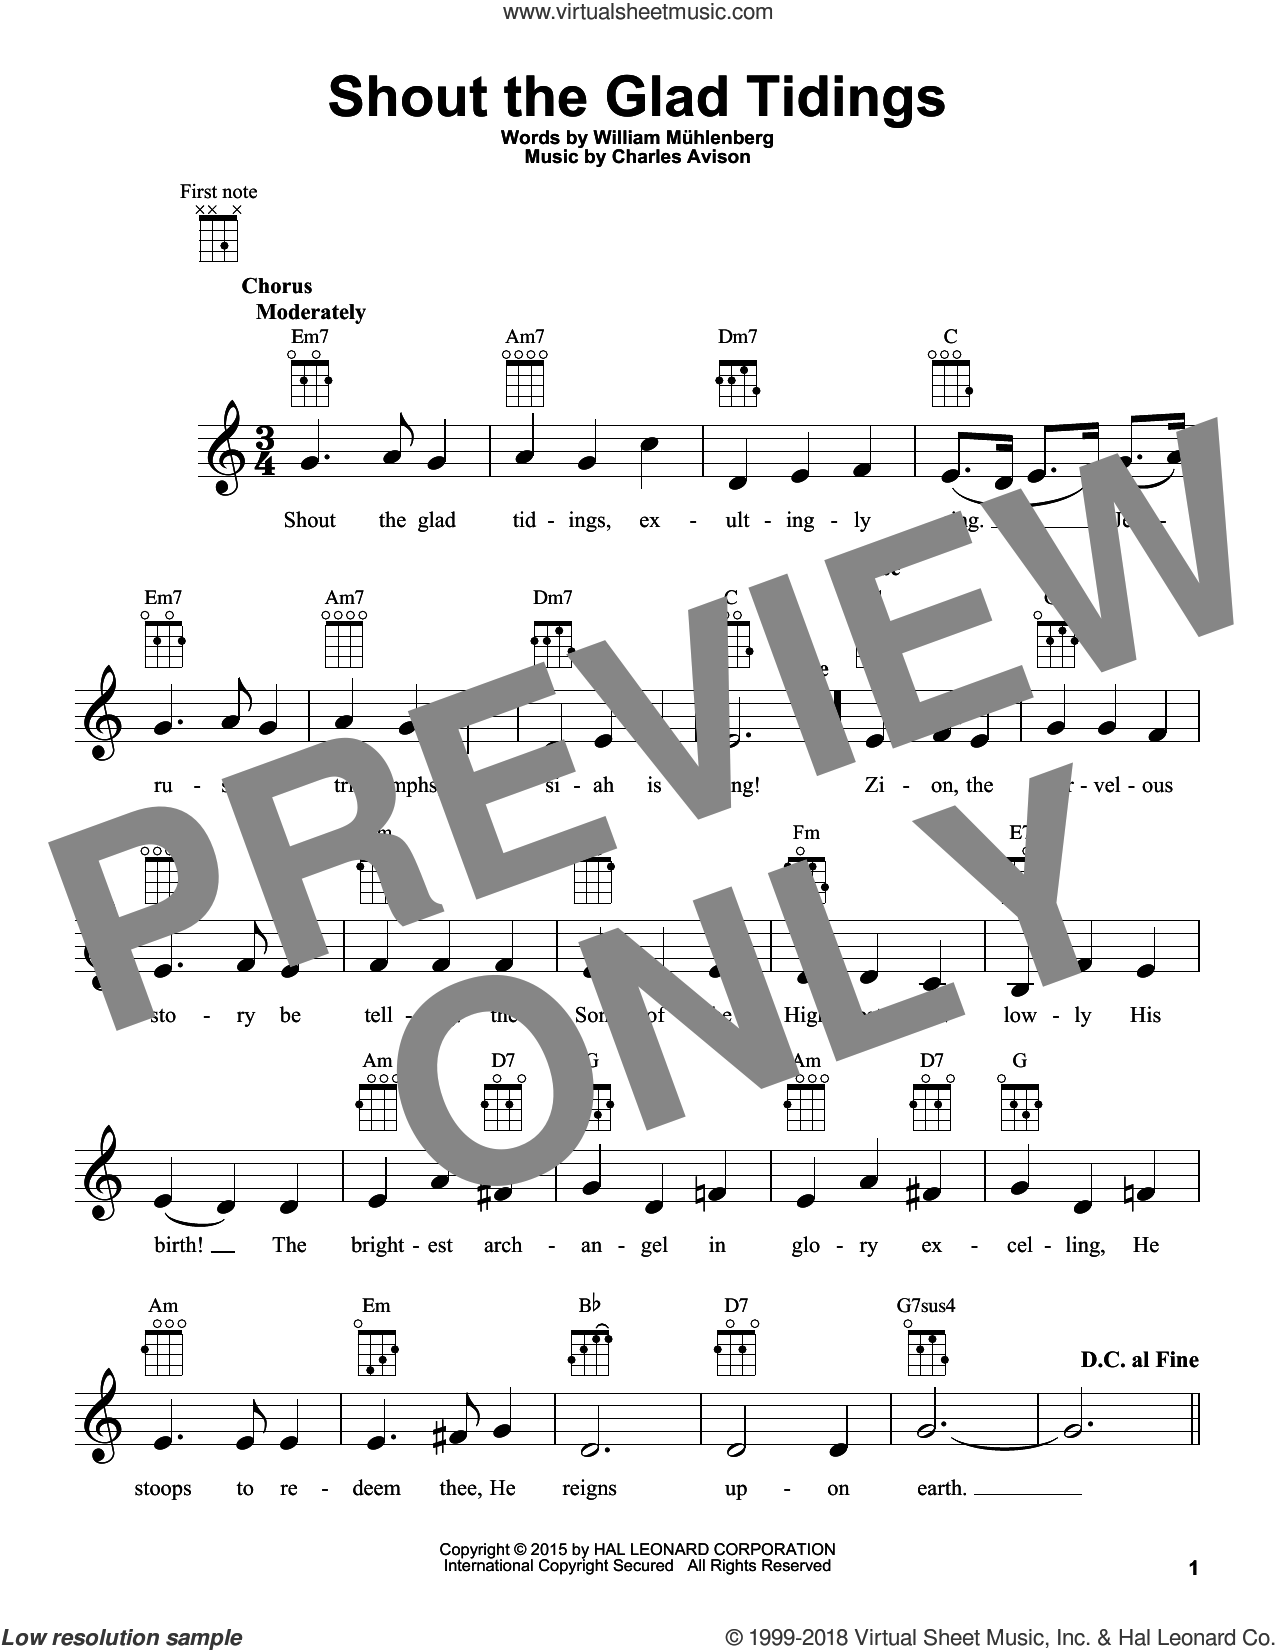 Shout The Glad Tidings sheet music for ukulele by William Mühlenberg and Charles Avison, intermediate skill level